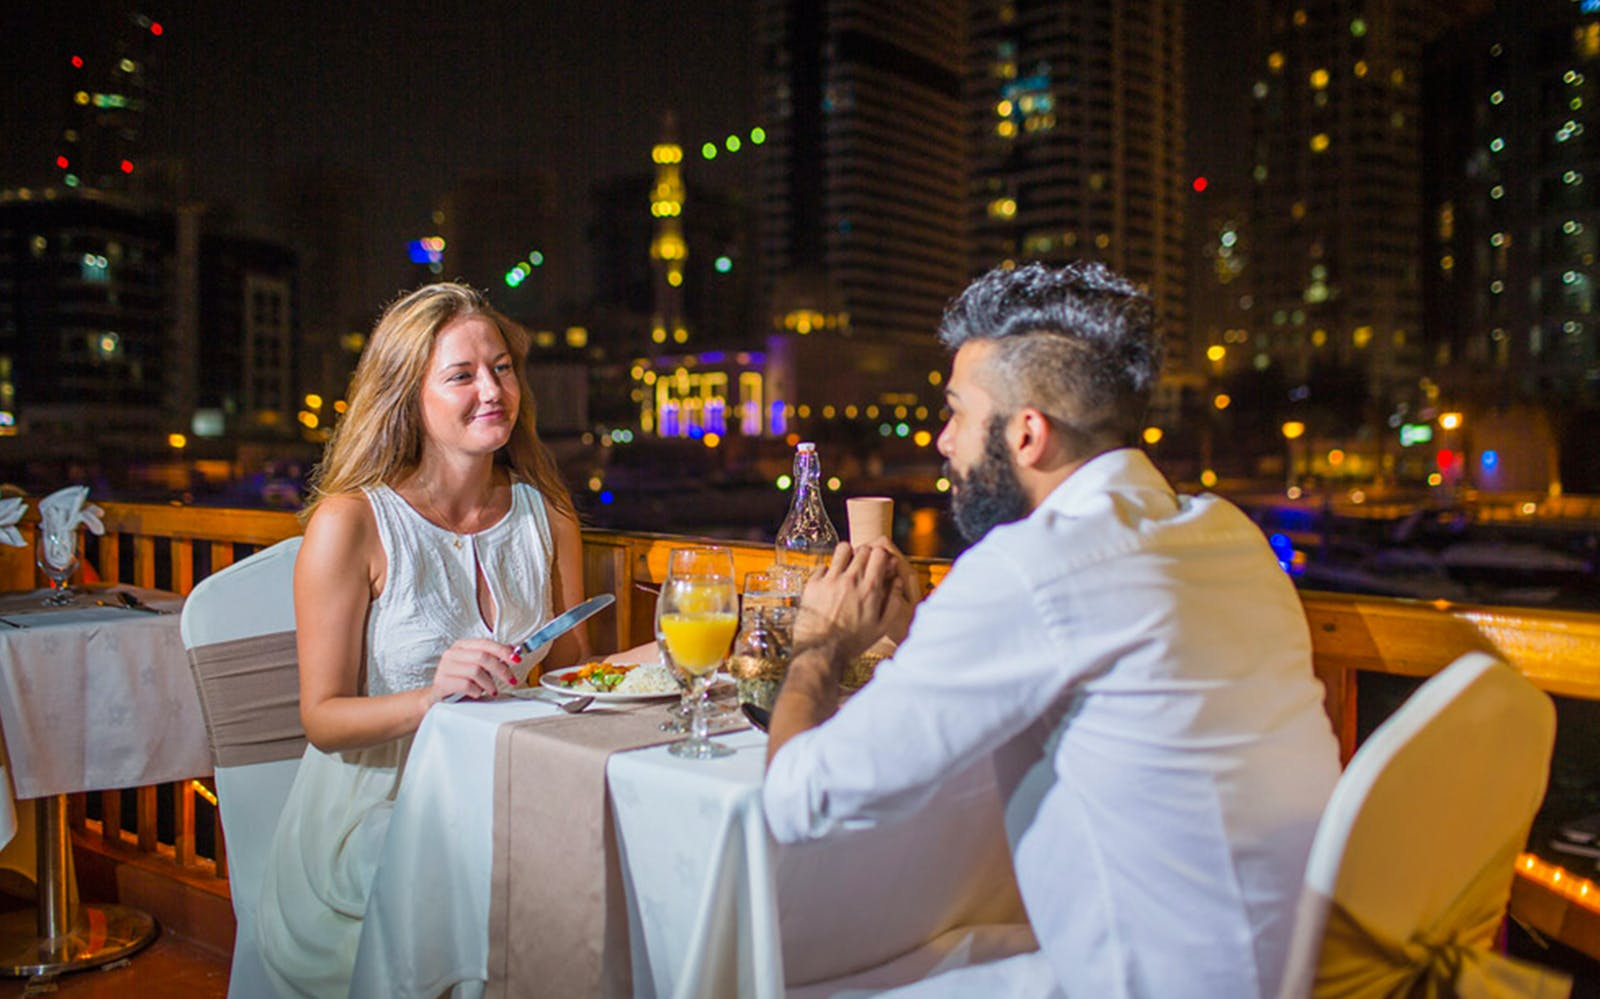 Dubai Marina Dhow Dinner Cruise with Live Entertainment